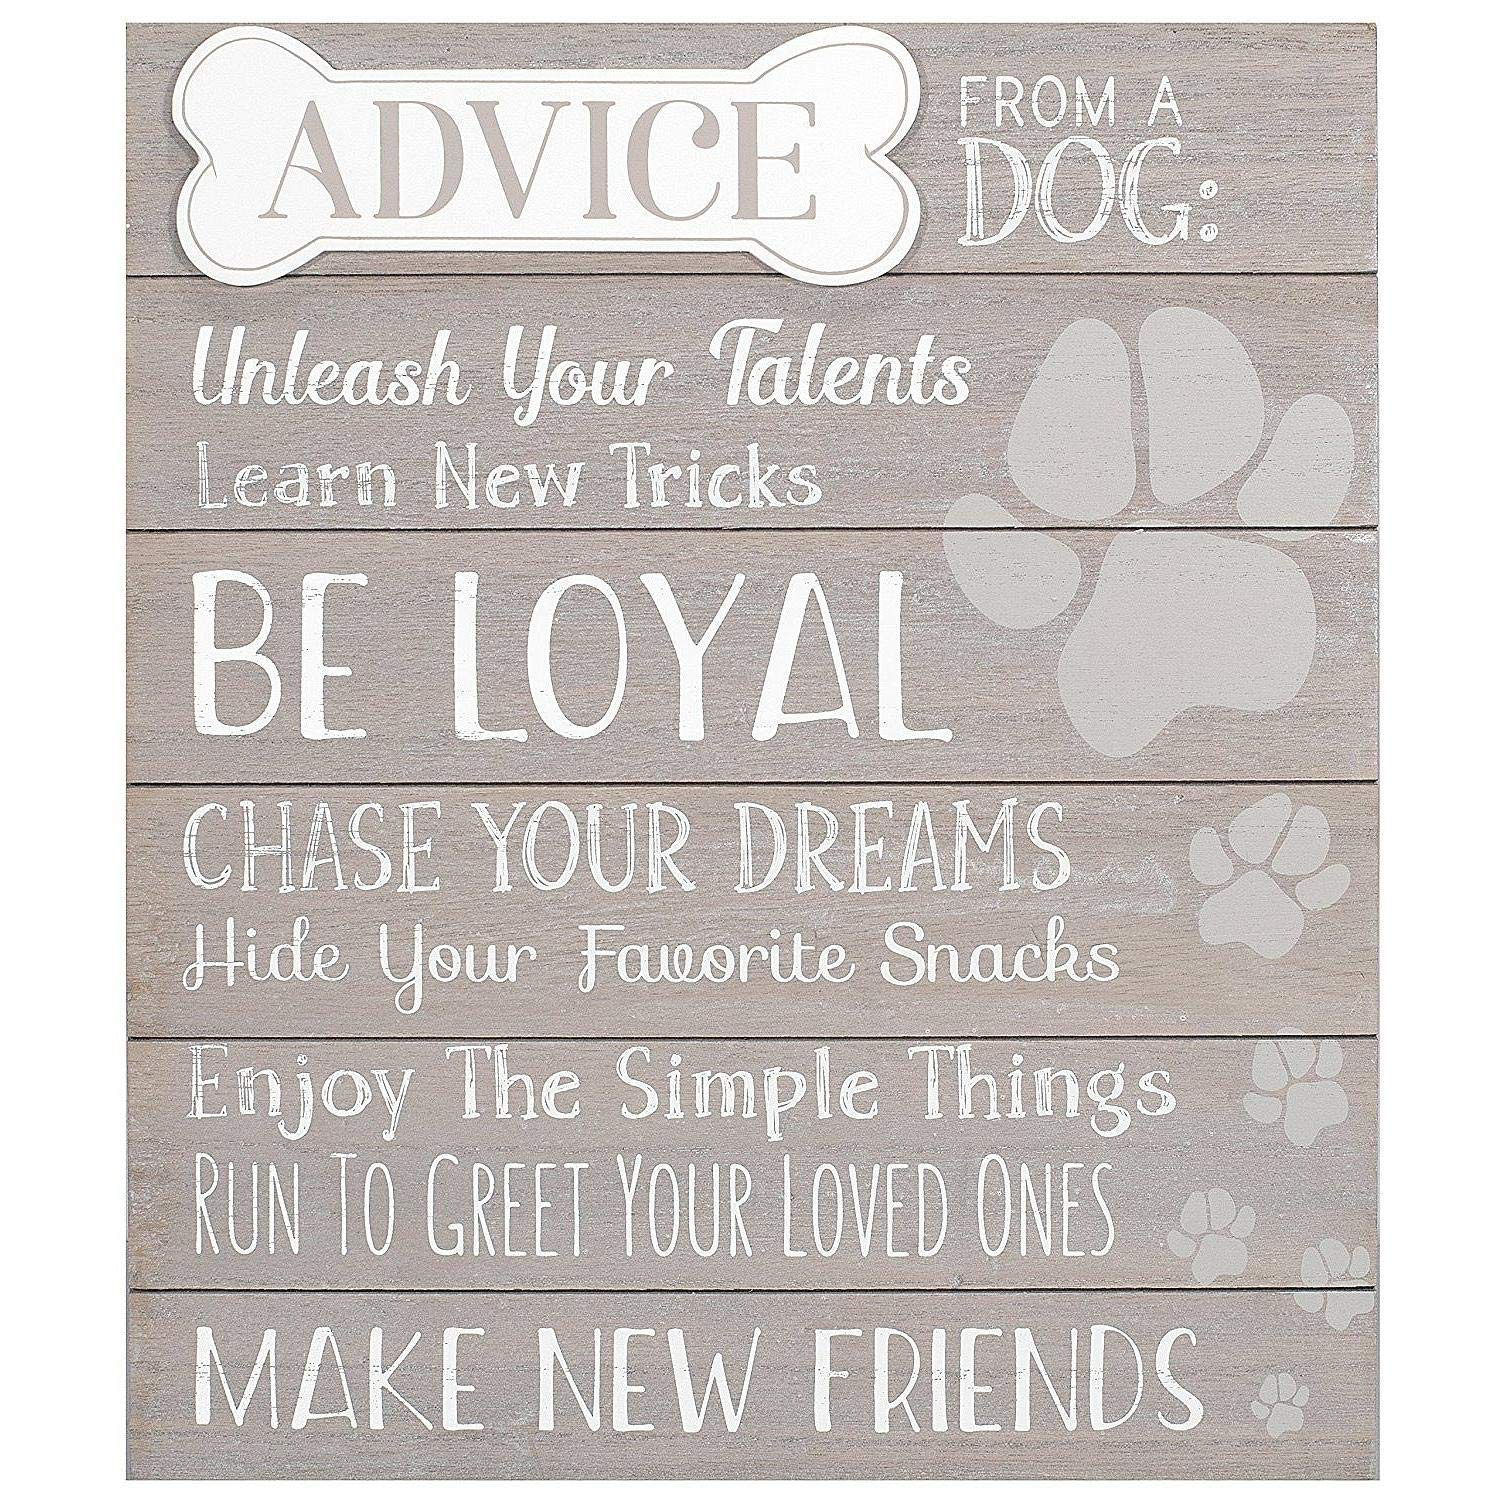 Malden International Designs 20078-01 at at Home Décor Advice from A Dog, 12x14, Gray